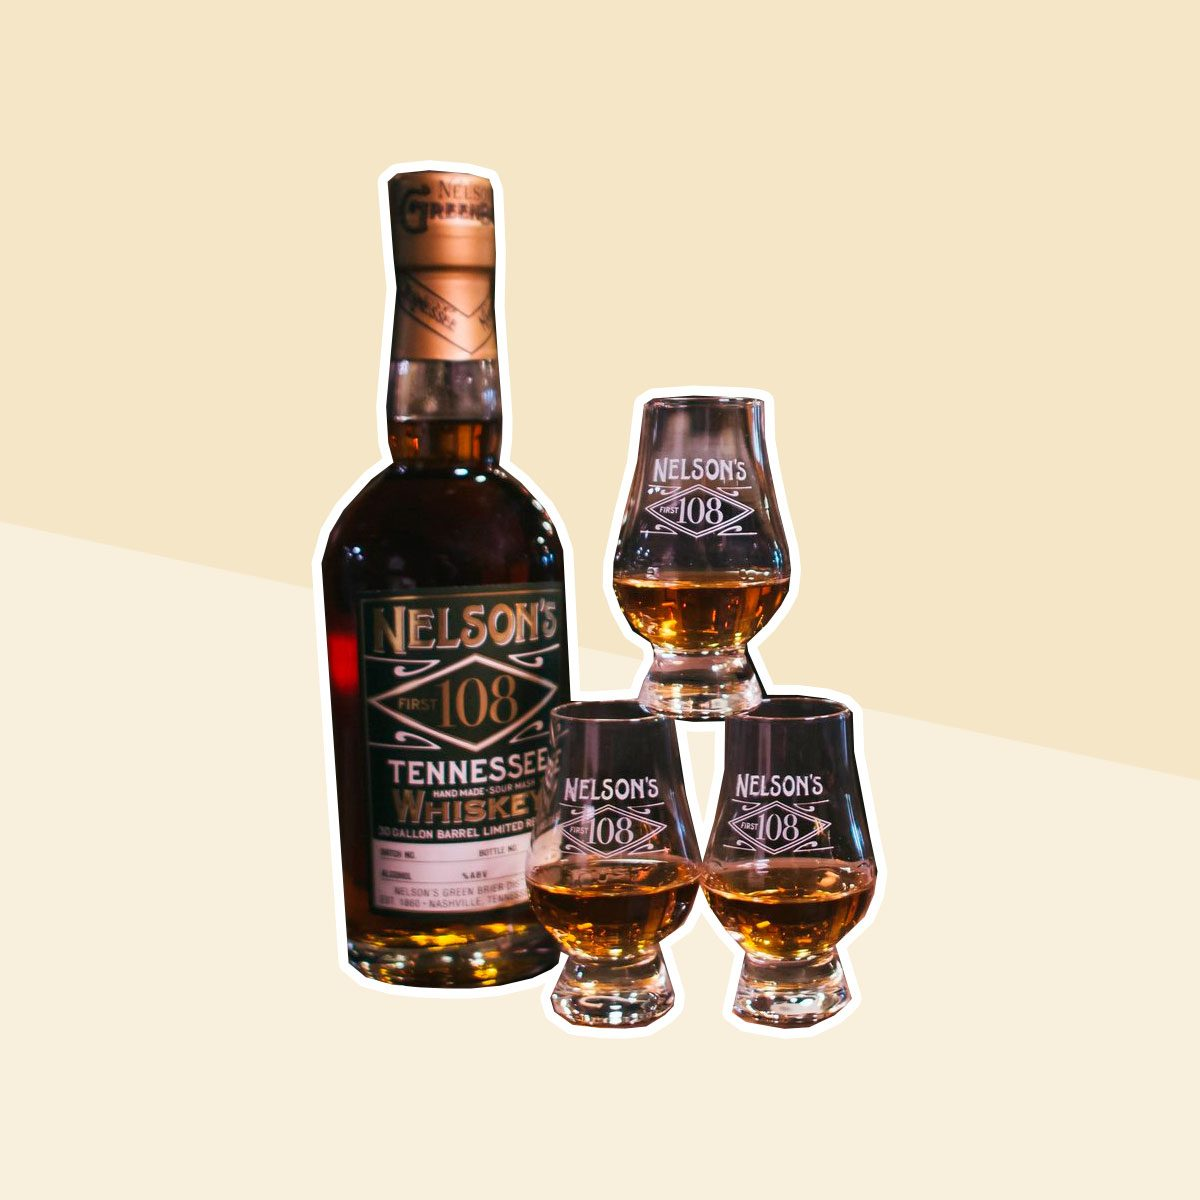 Nelson's Green Brier 108 Tennessee Whiskey